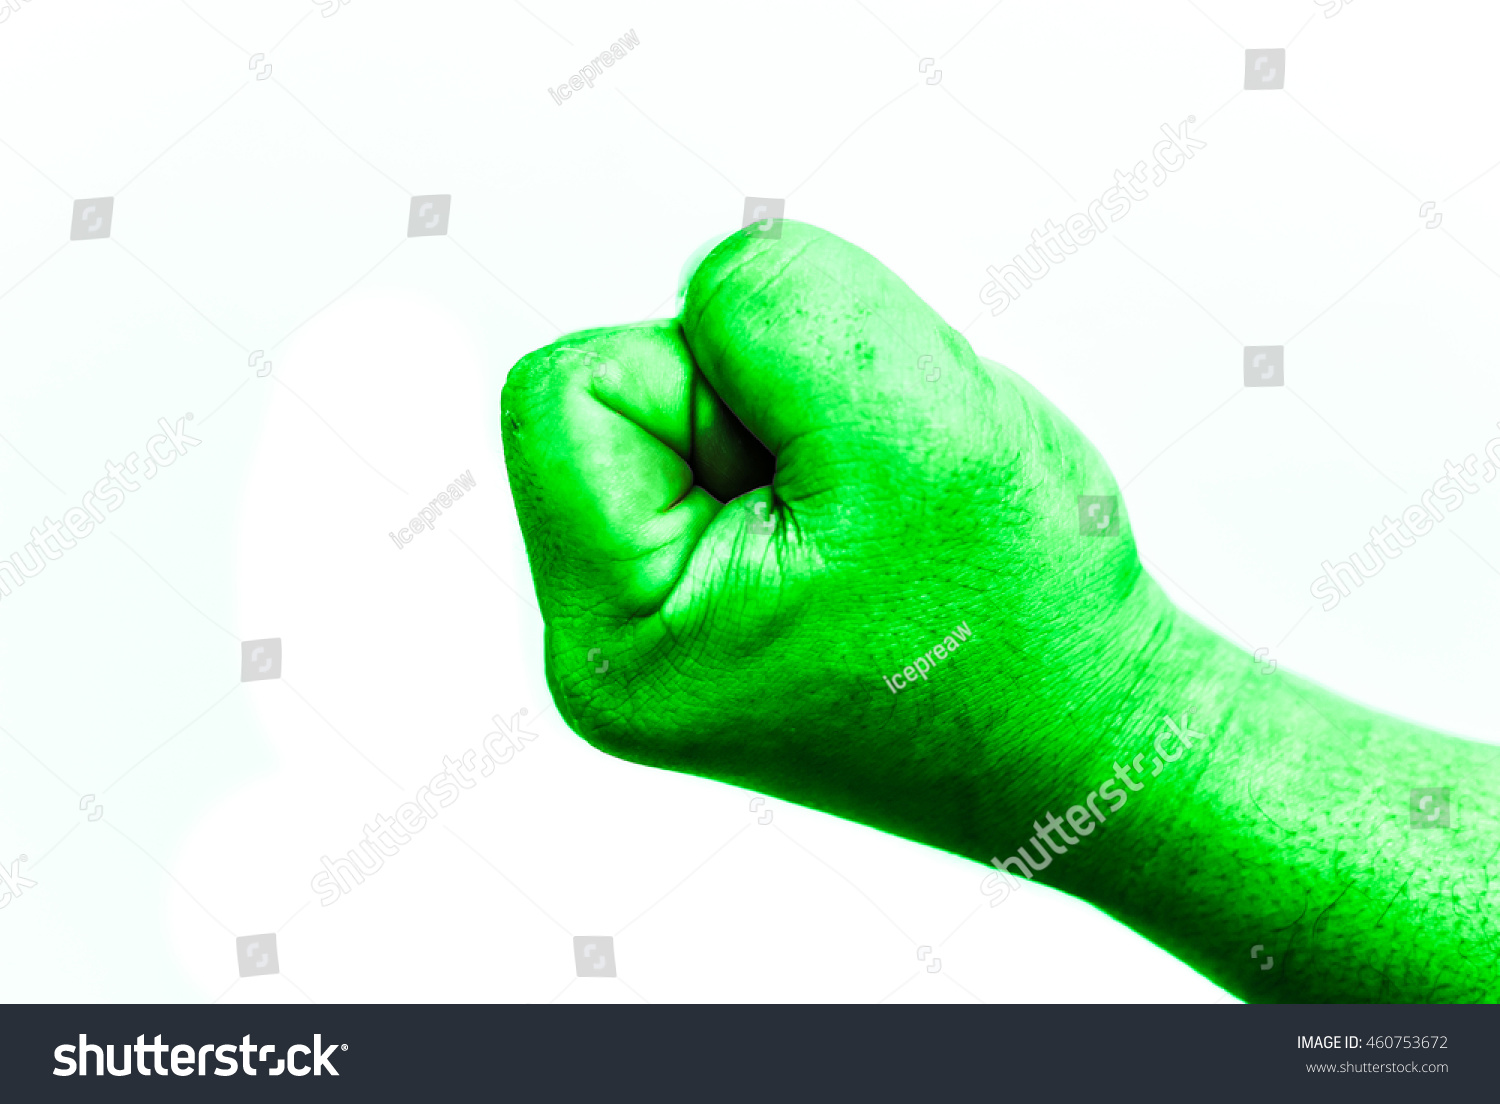 Isolate Hulk Fist On White Background Stock Photo Edit Now